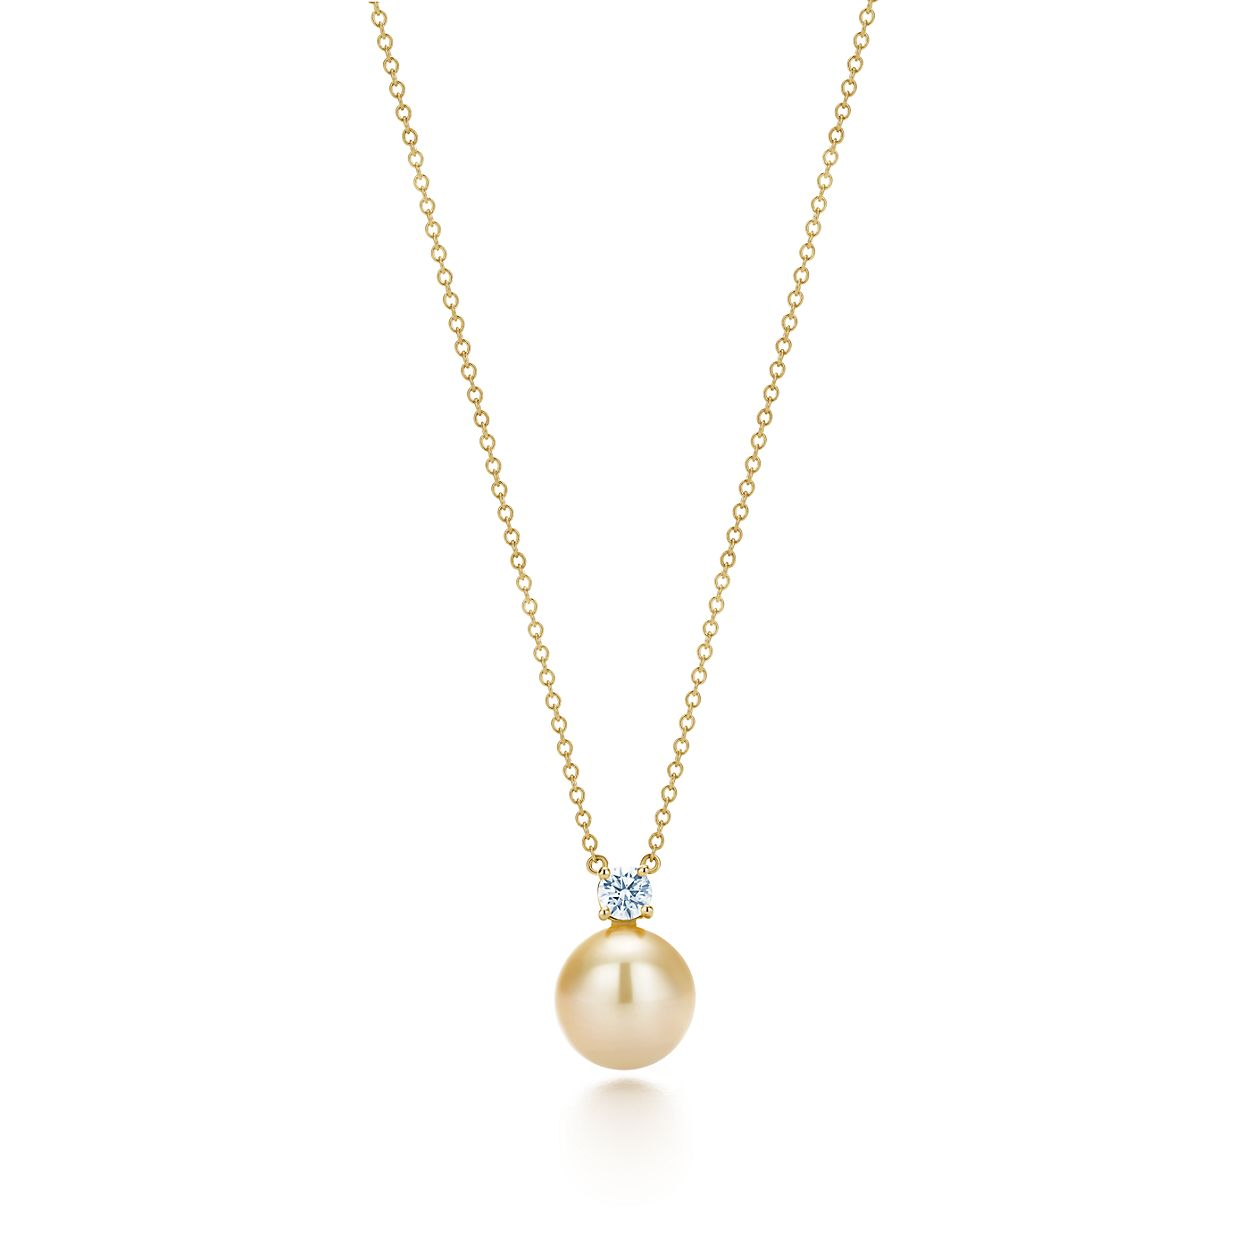 d product certified yellow cultured pearl webstore freshwater samuel h number necklace gold